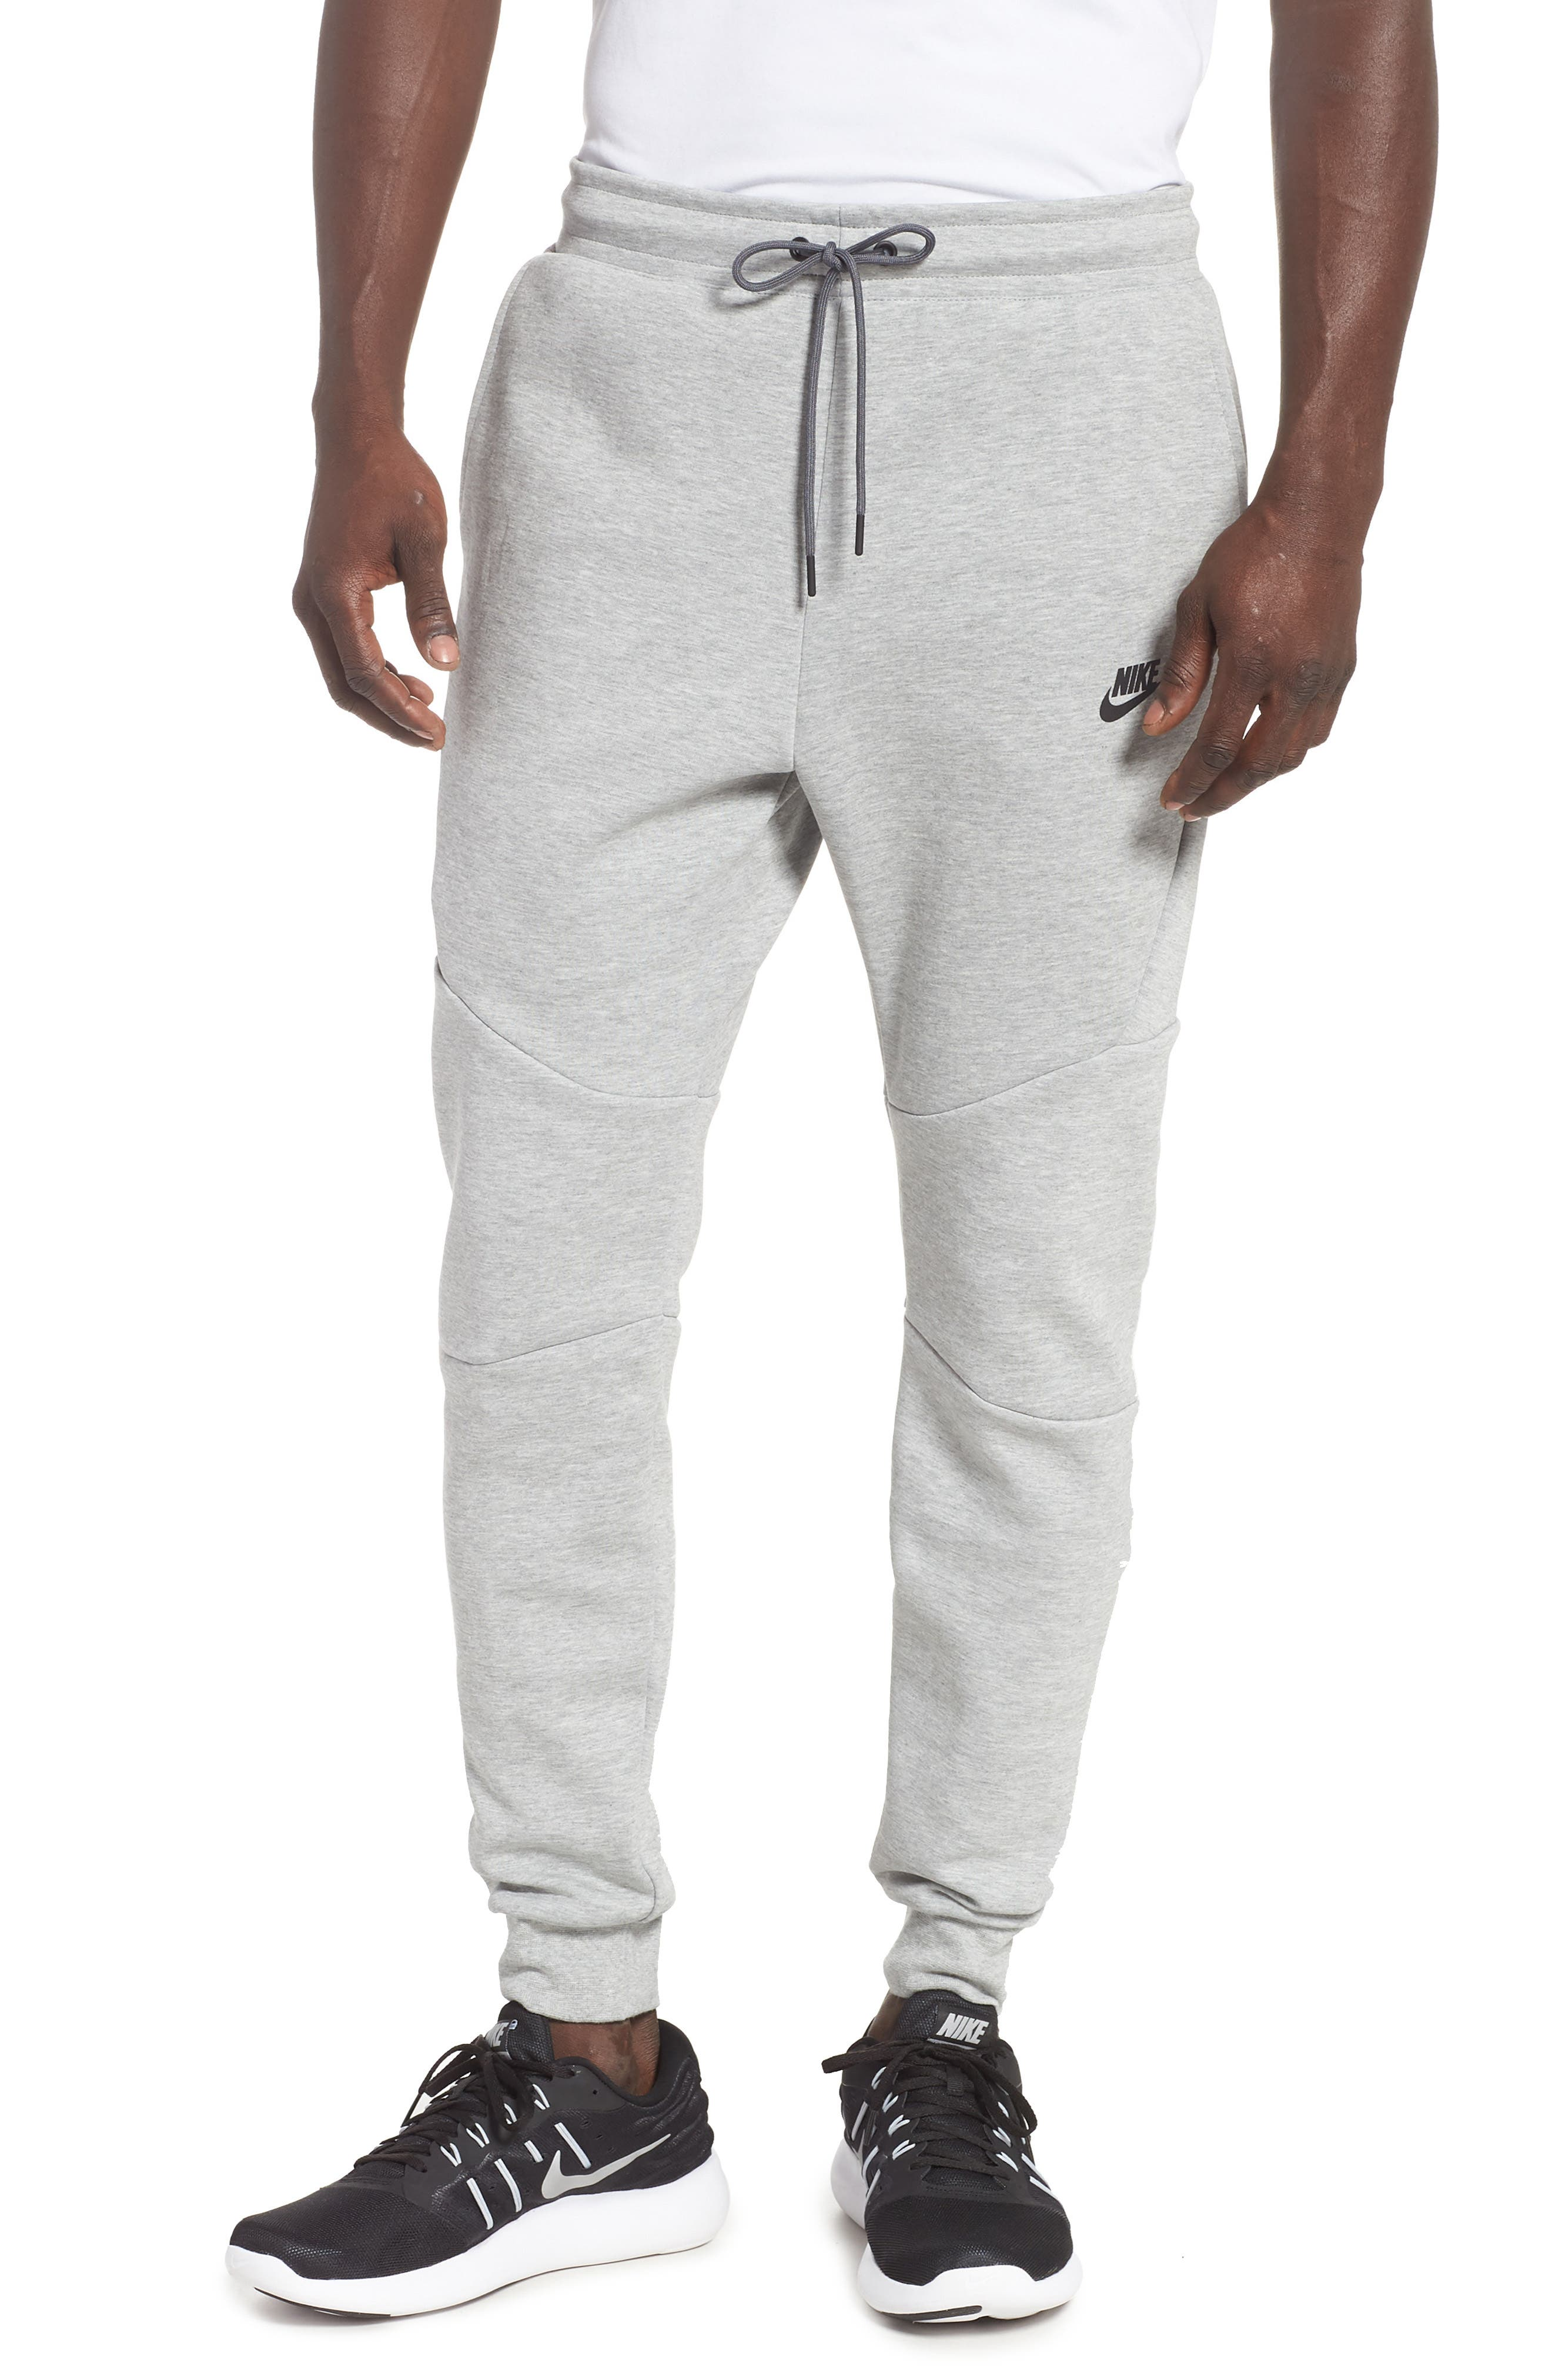 NIKE, Tech Fleece Jogger Pants, Main thumbnail 1, color, DARK GREY HEATHER/ BLACK